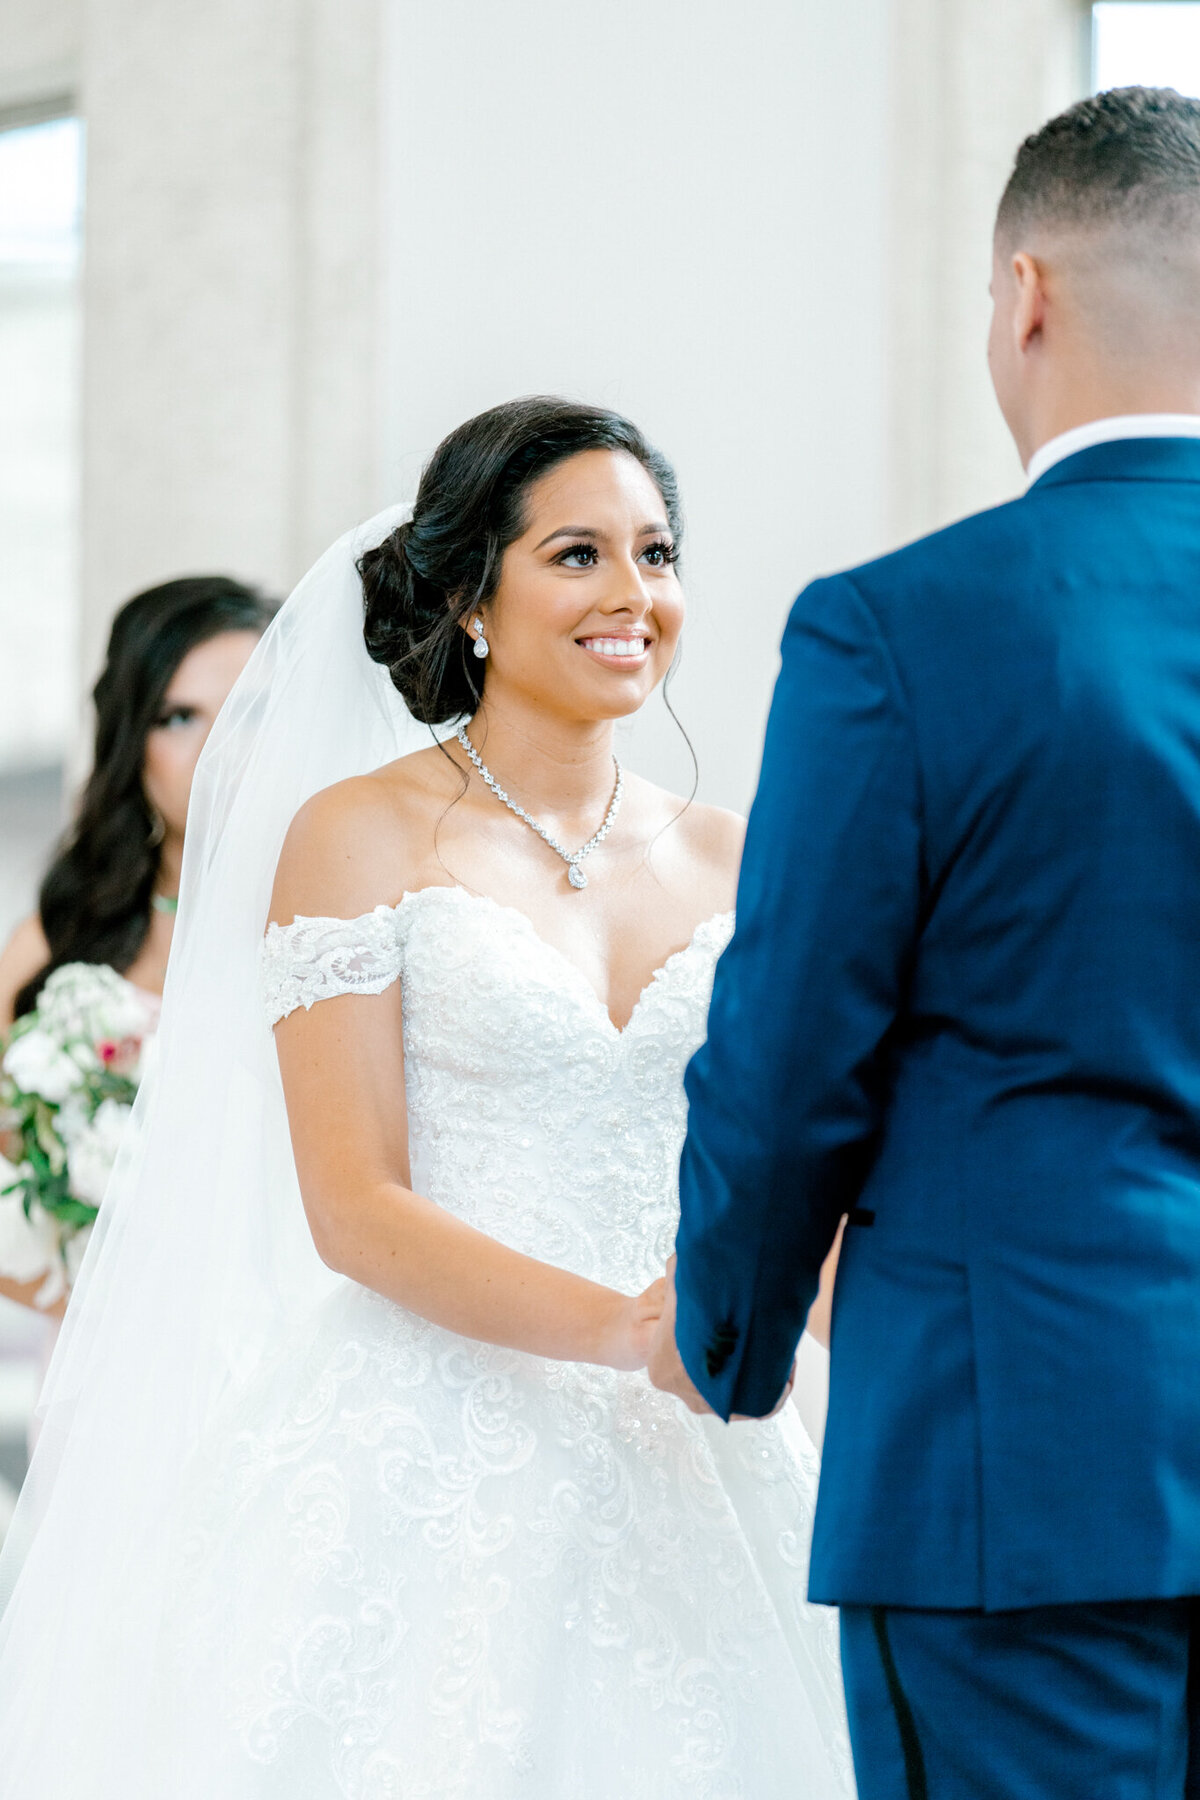 Jasmine & Josh Wedding at Knotting Hill Place | Dallas DFW Wedding Photographer | Sami Kathryn Photography-79